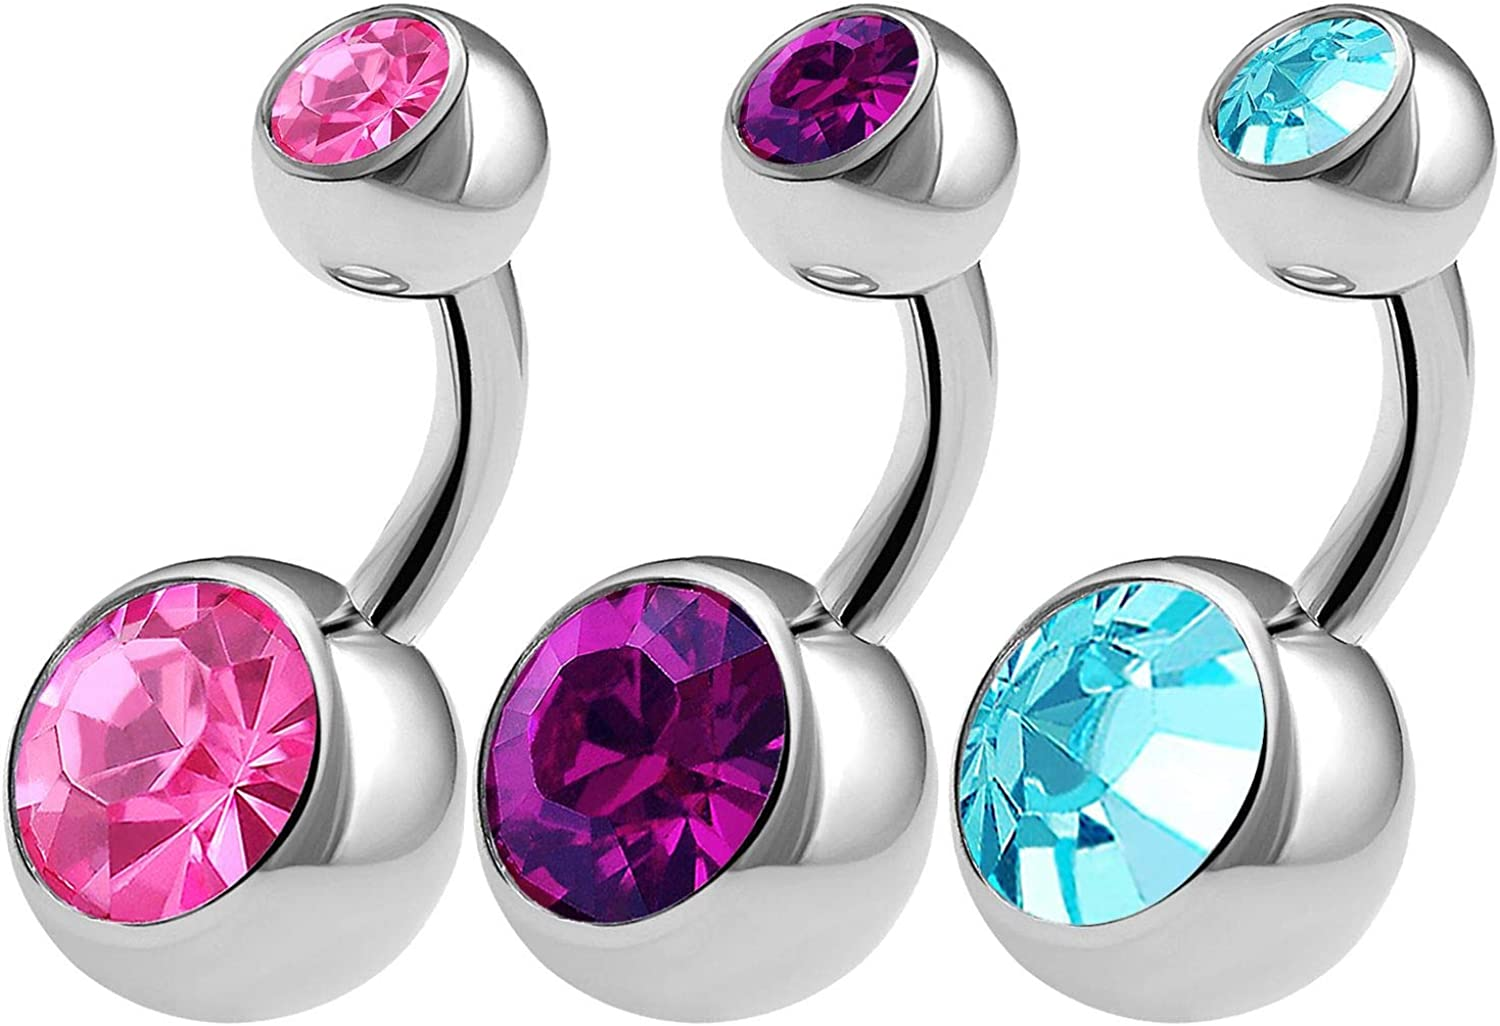 BanaVega 3PCS 316L Surgical Steel Short Belly Button Rings Studs 14 Gauge 1/4 6mm Rose Amethyst Shallow Navel Jewelry Choose Colors